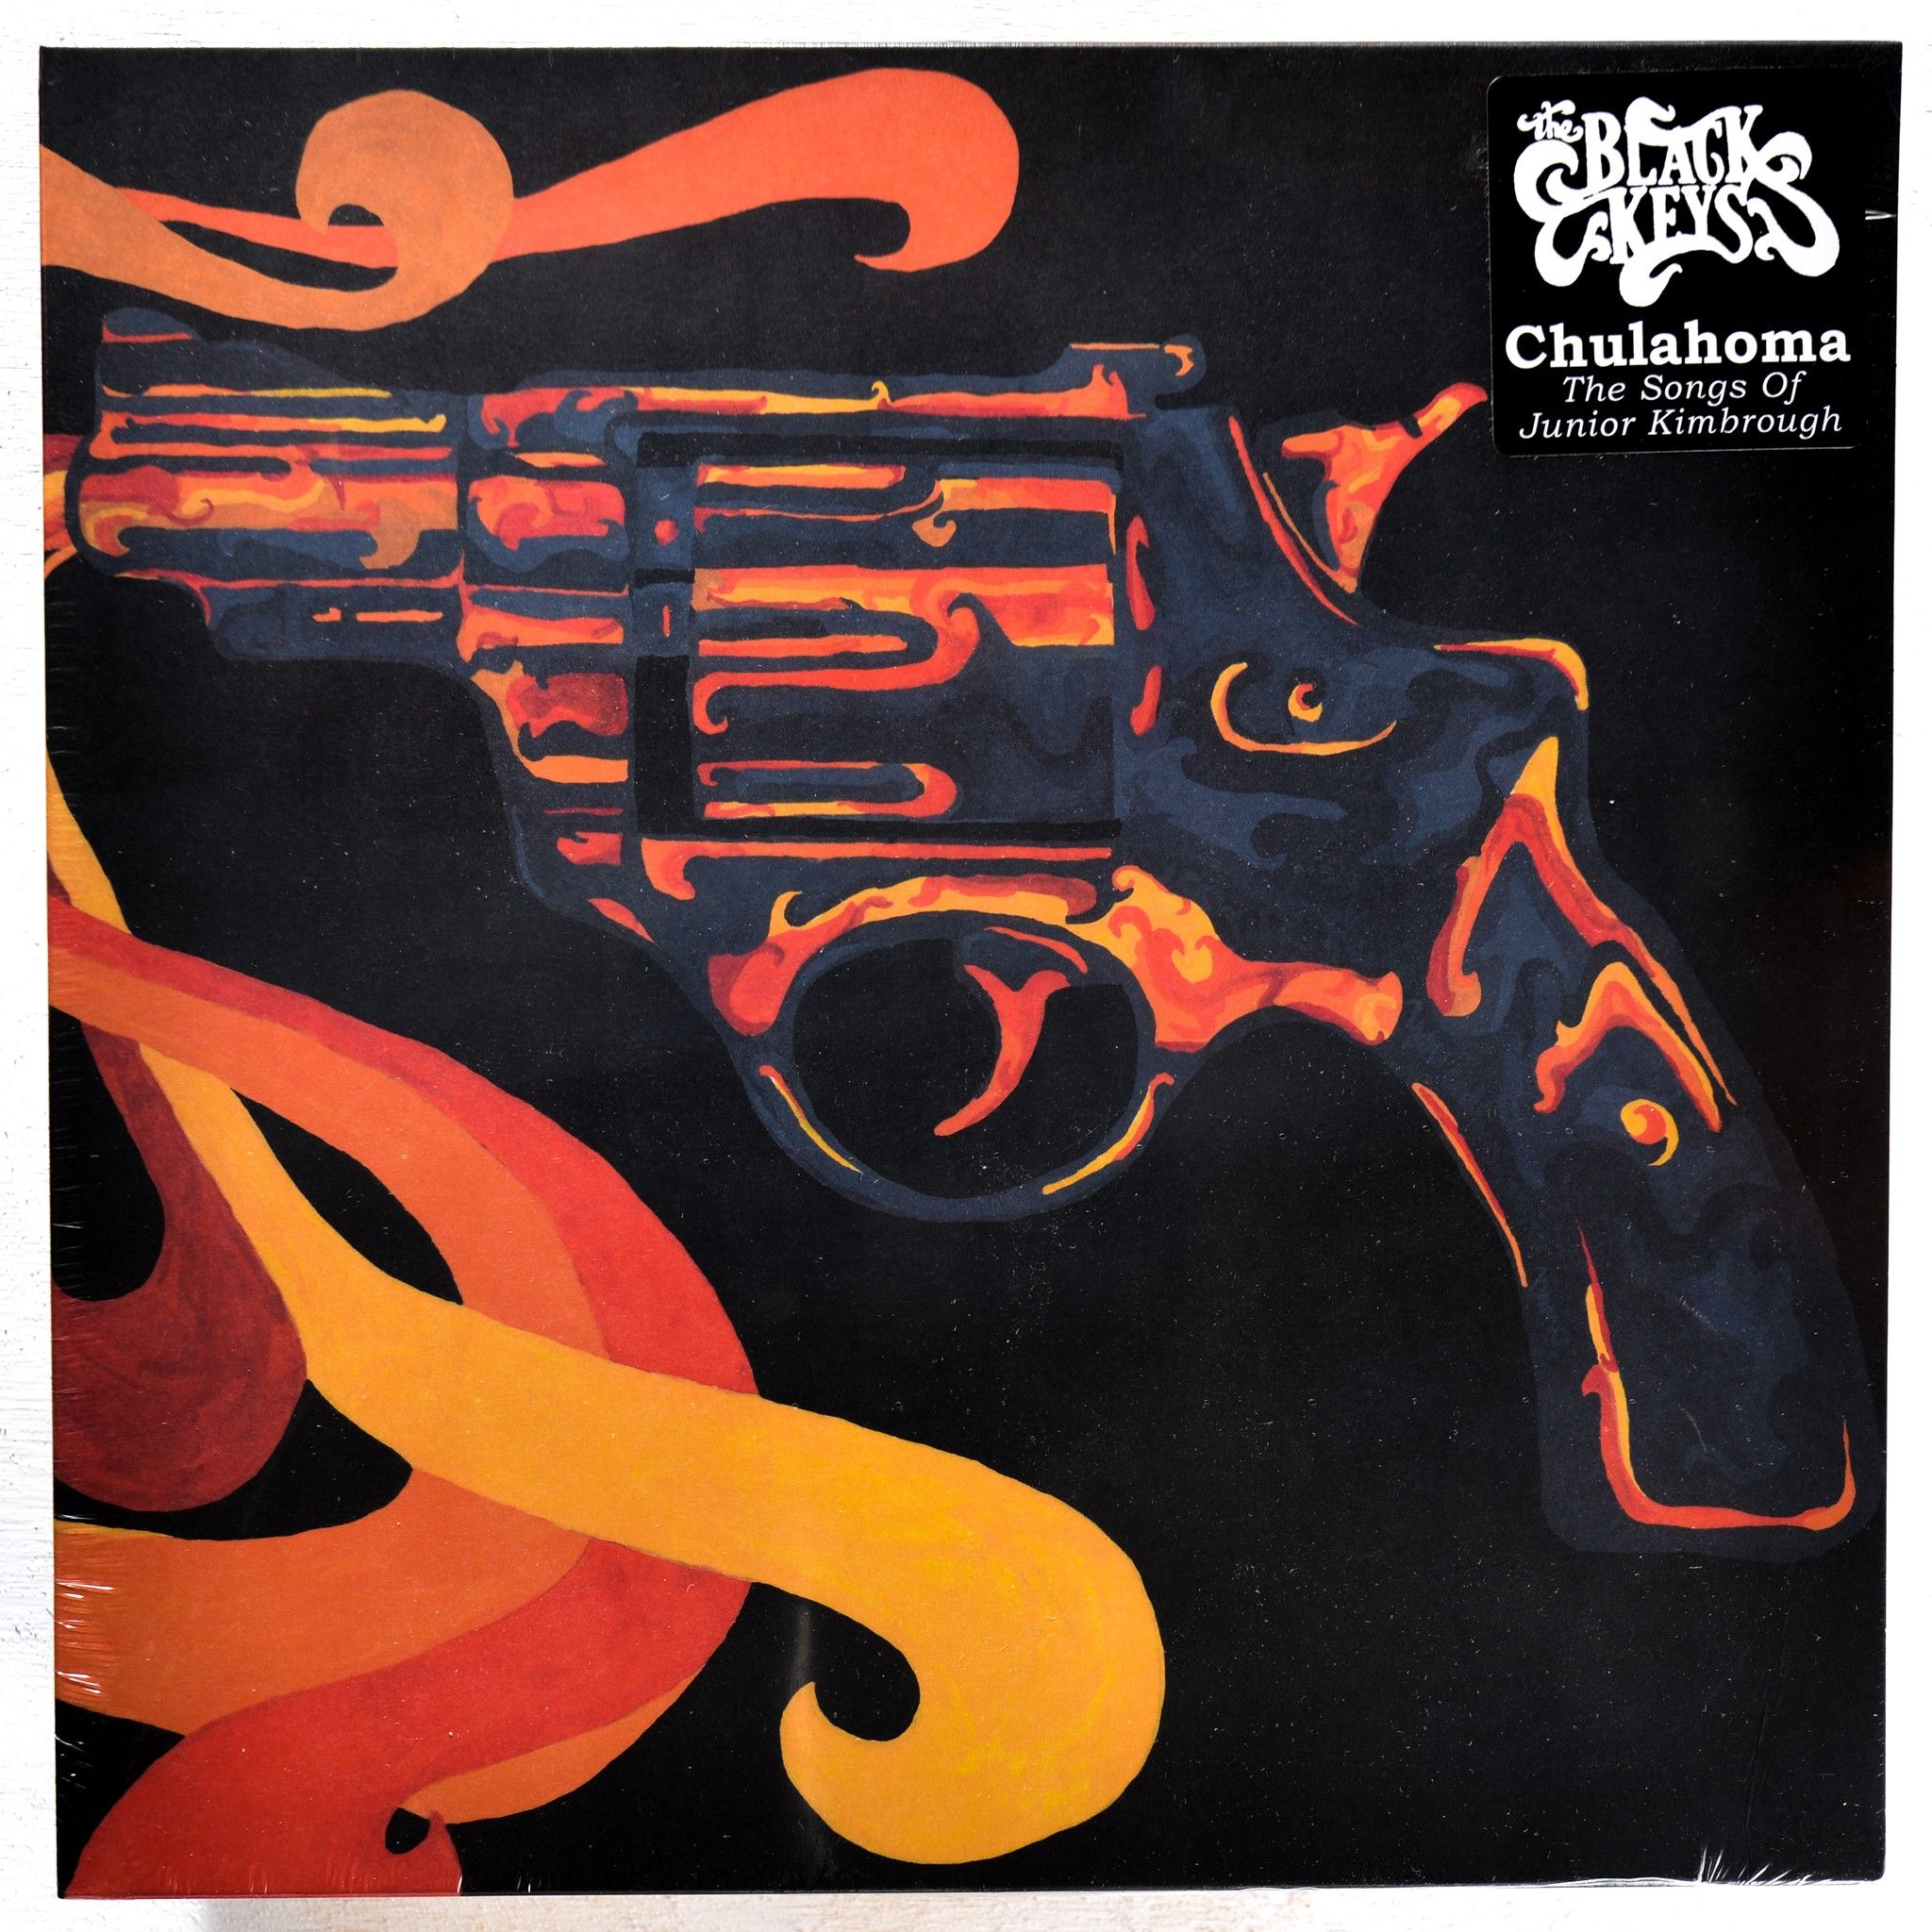 Best Of The Black Keys Chulahoma Poster The Black Keys Vinyl All The Young Dudes